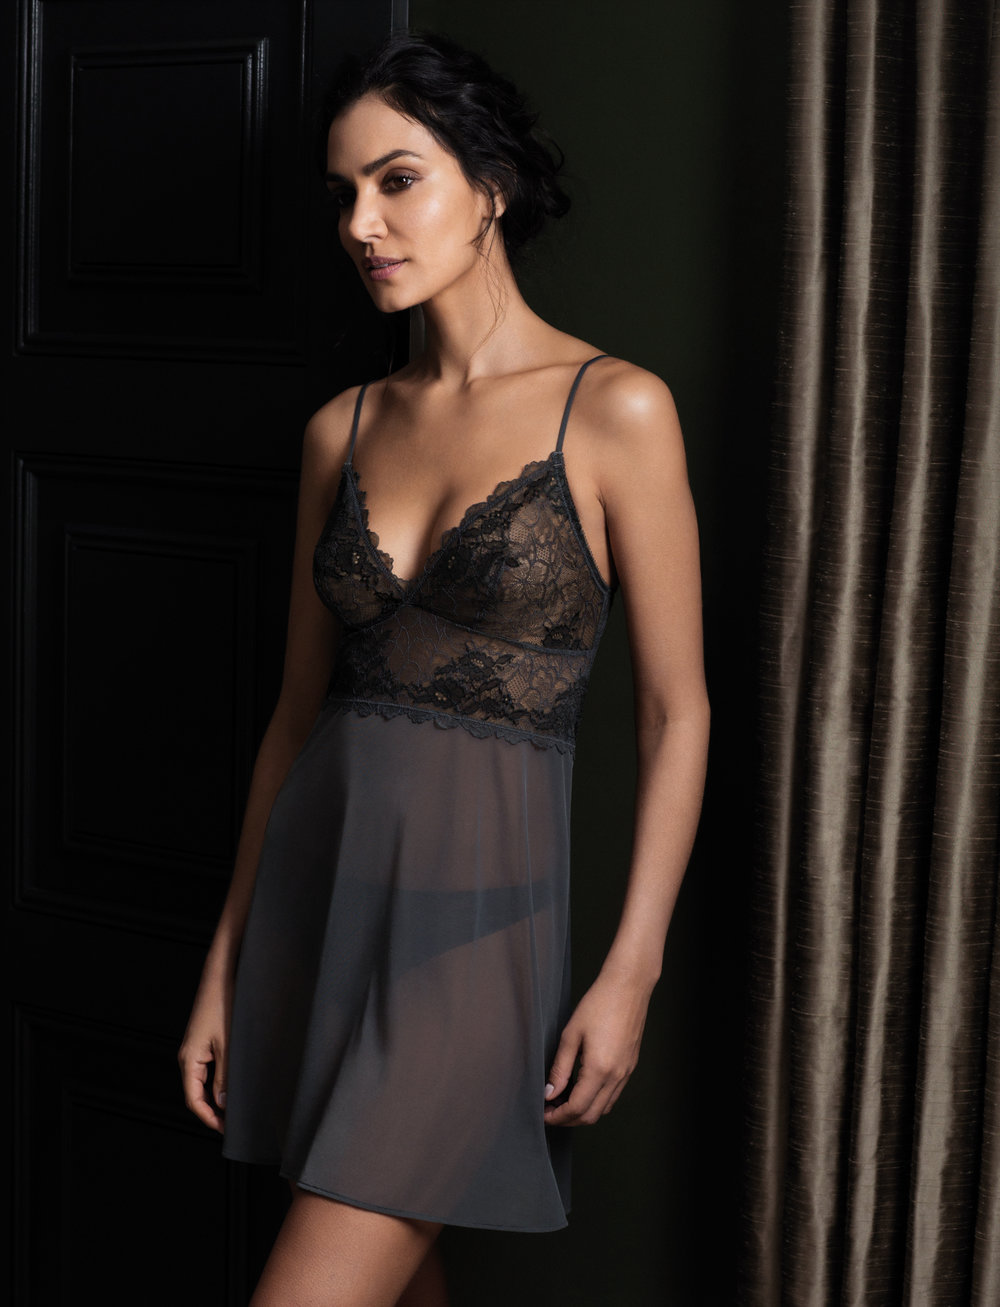 WACOAL-LINGERIE-EUR-LACE-PERFECTION-CHARCOAL-CHEMISE-WE135009-CONSUMER-WEB-AW18.jpg